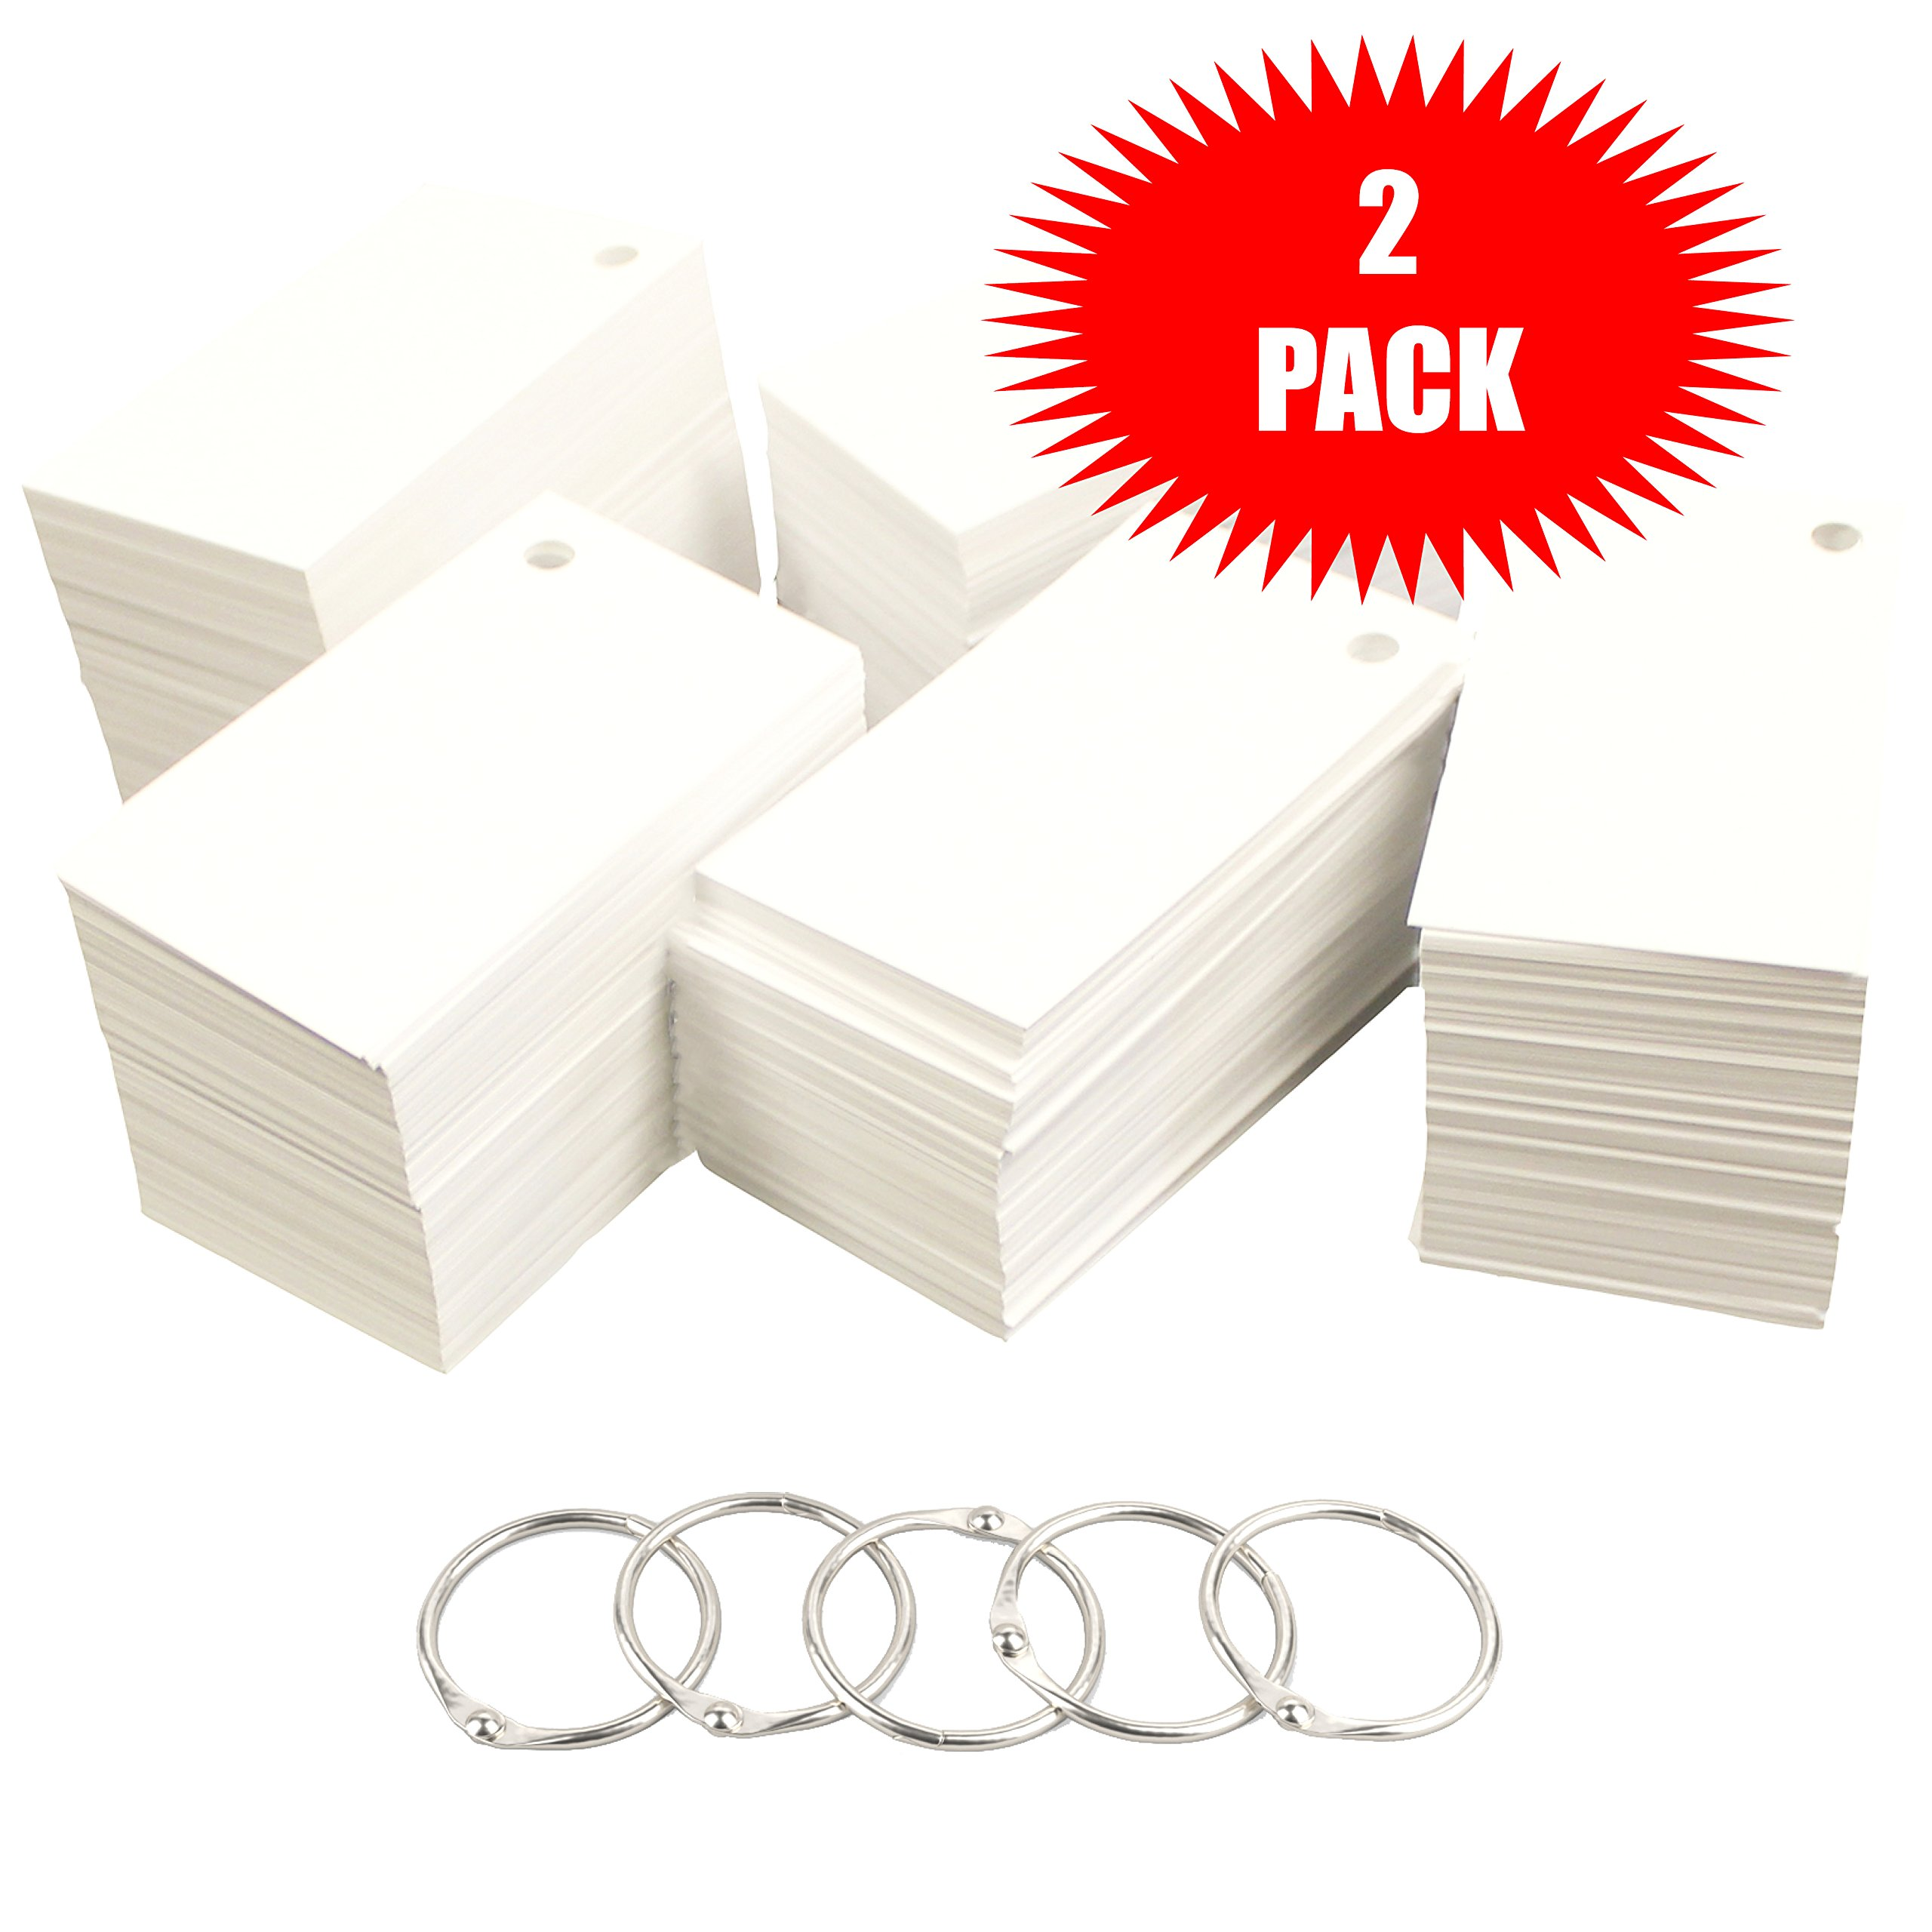 Debra Dale Designs 1,100 Small Blank Study Flash Cards - 110# White Smooth Index - Single Hole Punched with 5 Metal Binder Rings - 2'' x 3-1/2. Best For Learning Languages (2 Pack)